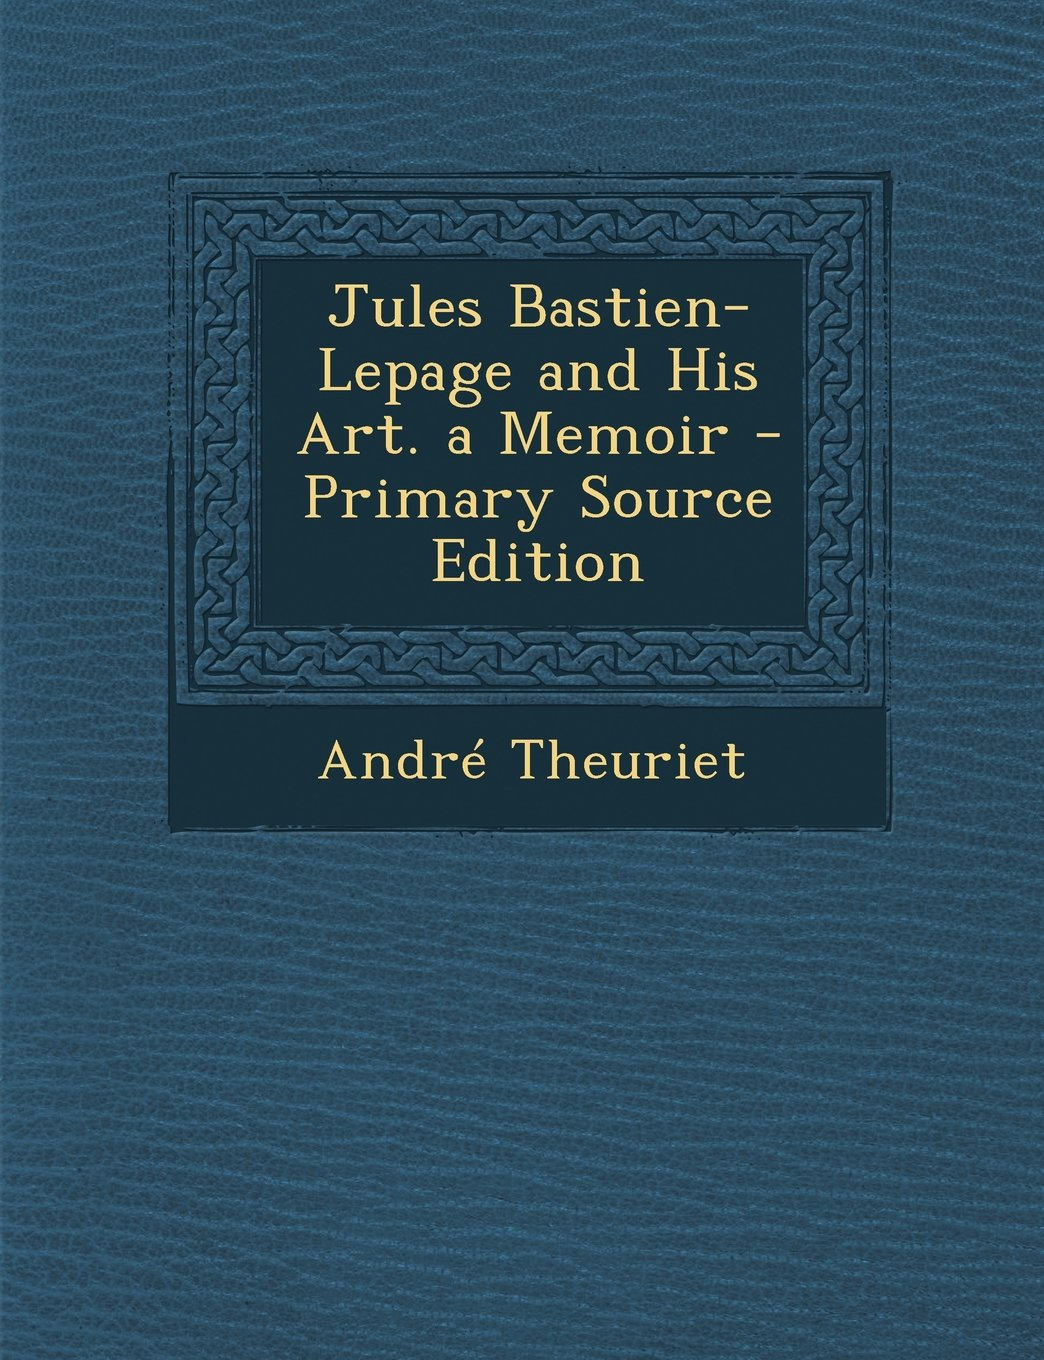 Read Online Jules Bastien-Lepage and His Art. a Memoir - Primary Source Edition PDF